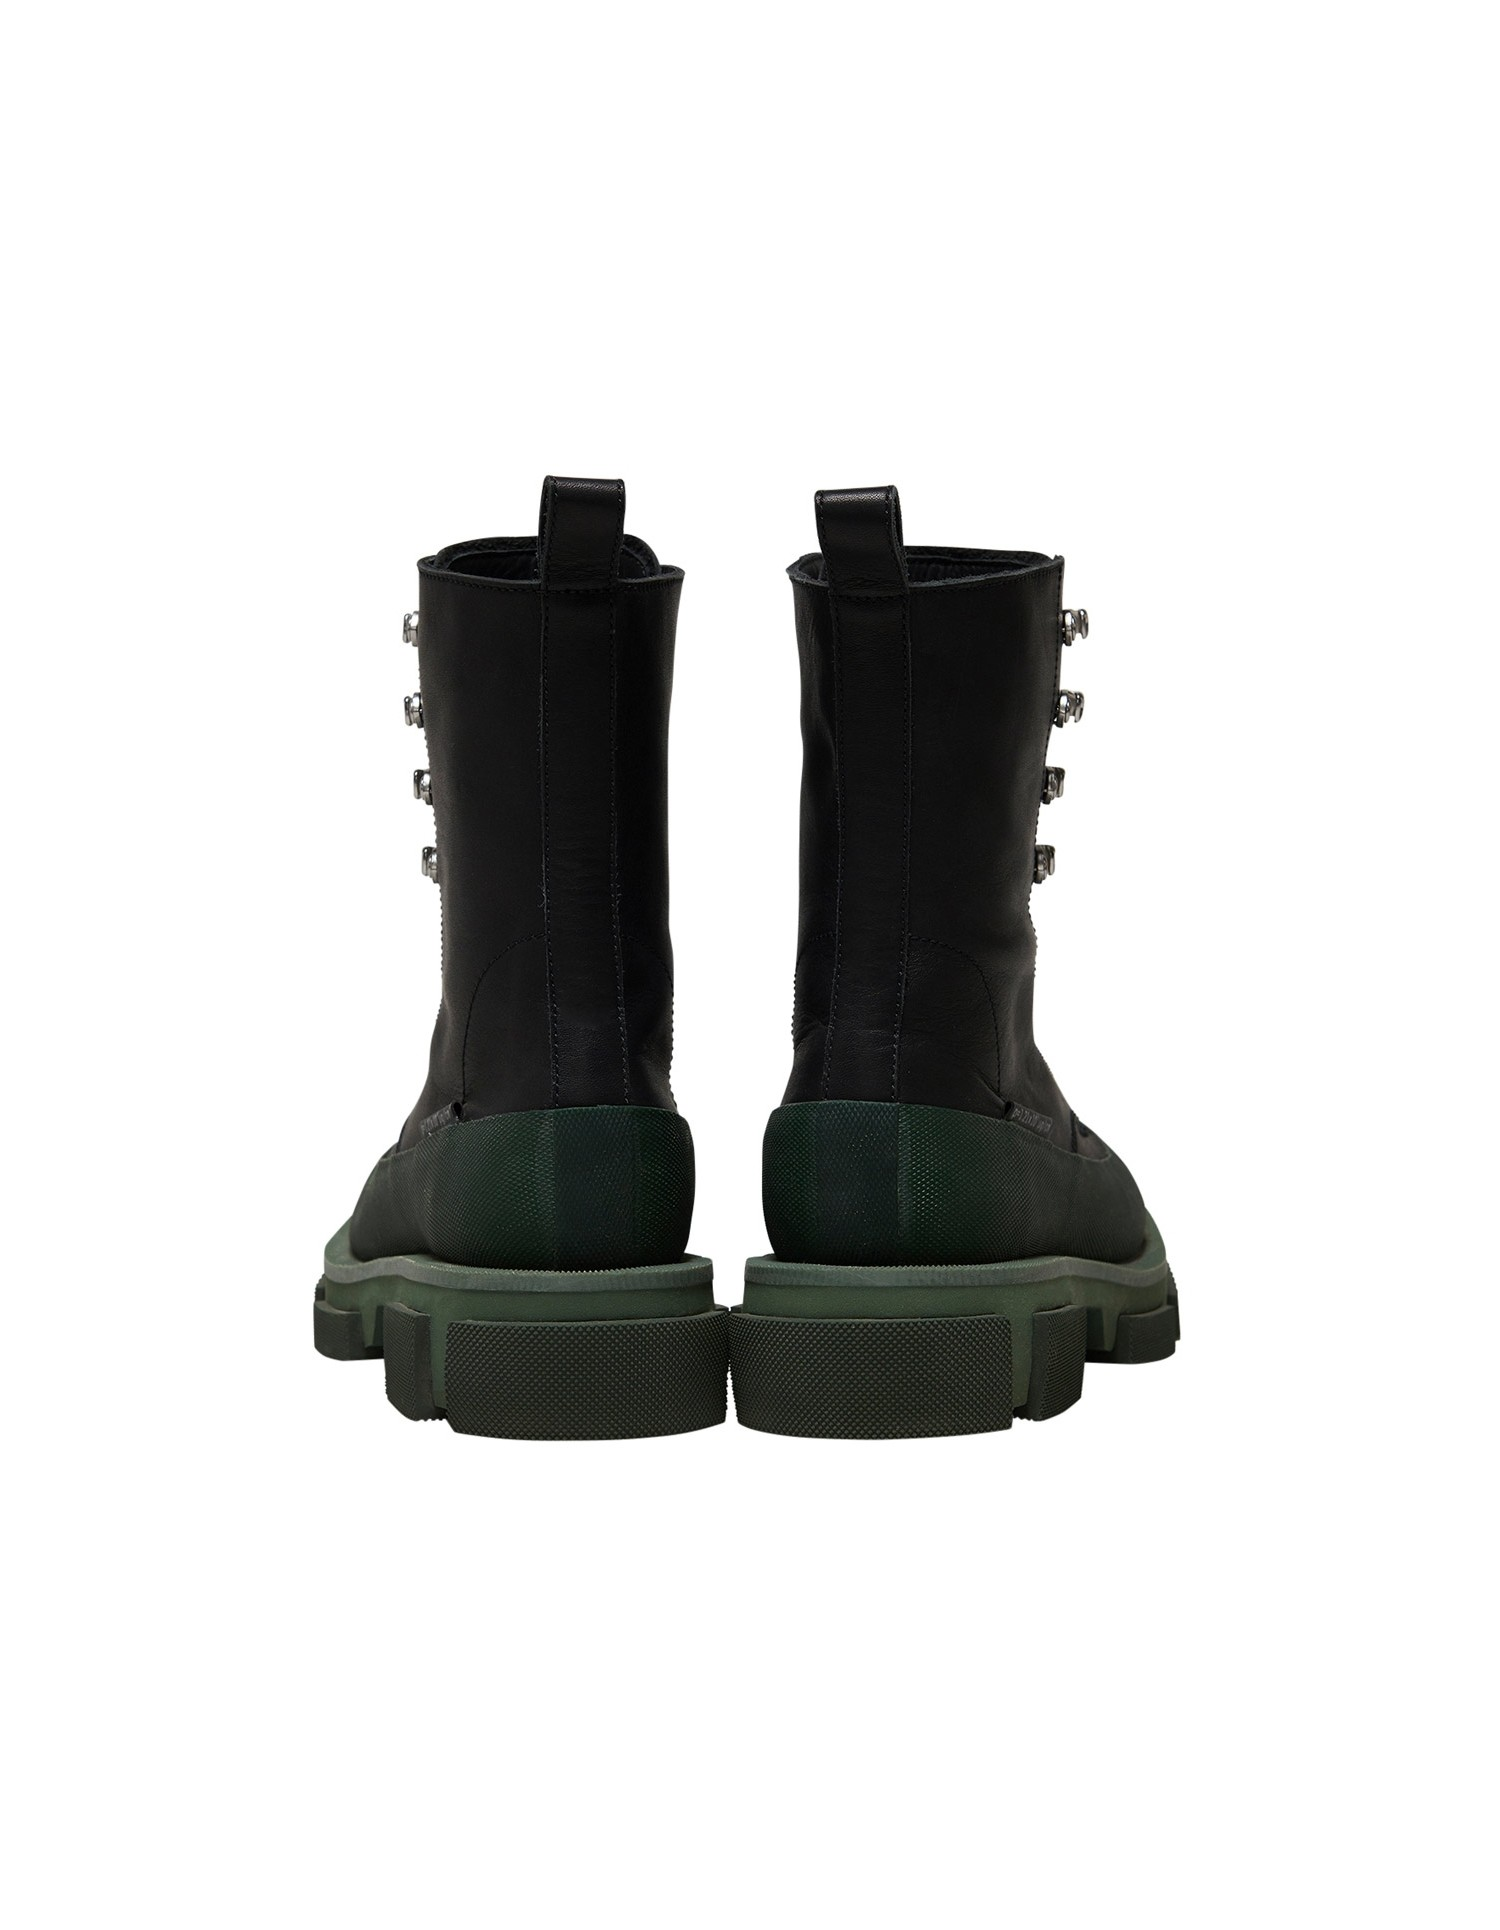 Both x MONSE Gao High Boots in Black and Olive Back View